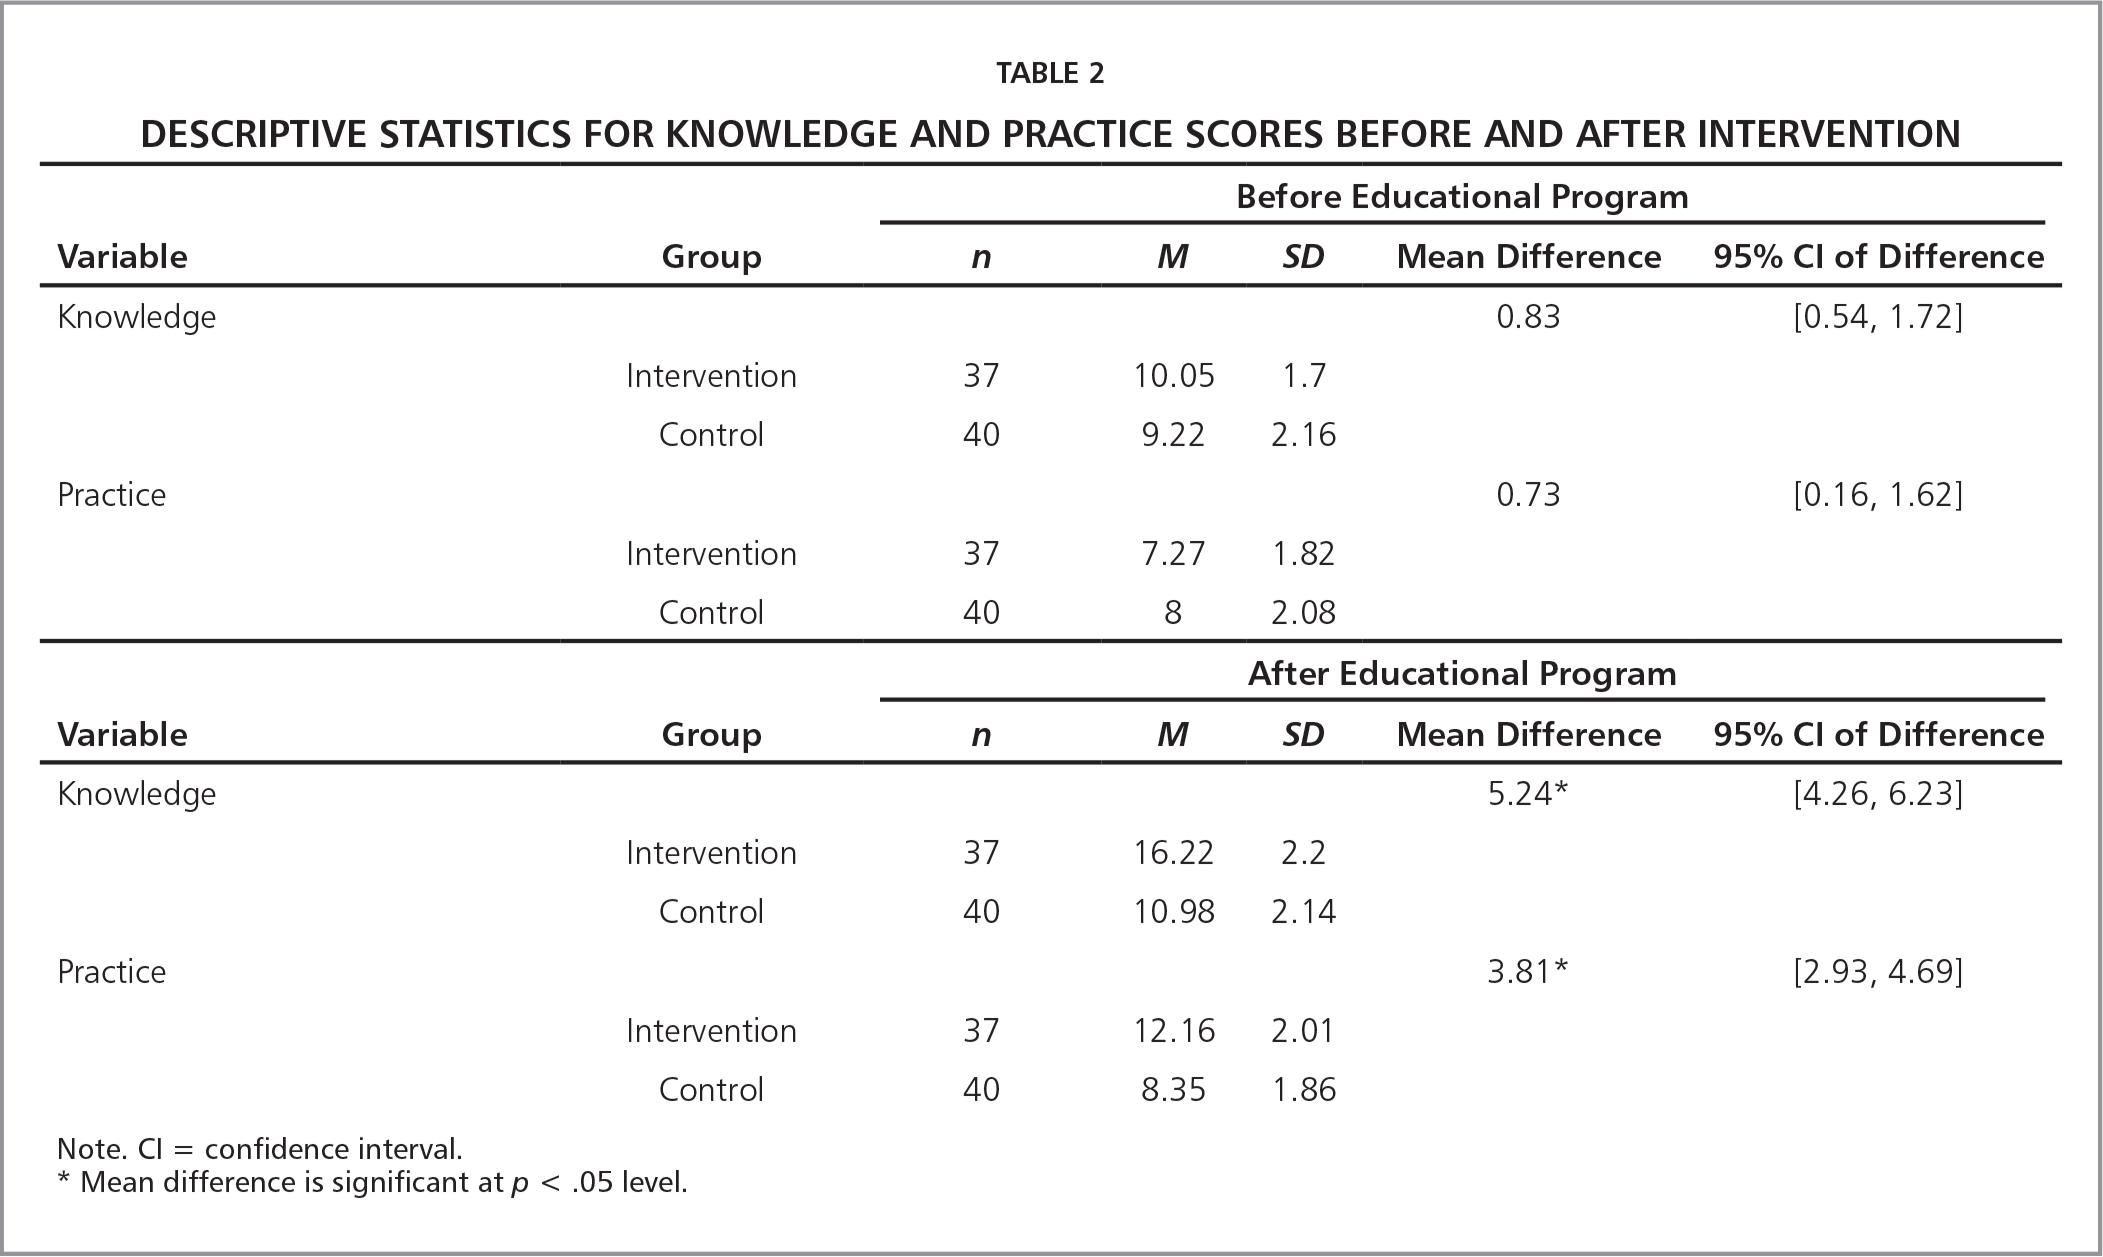 Descriptive Statistics for Knowledge and Practice Scores Before and After Intervention